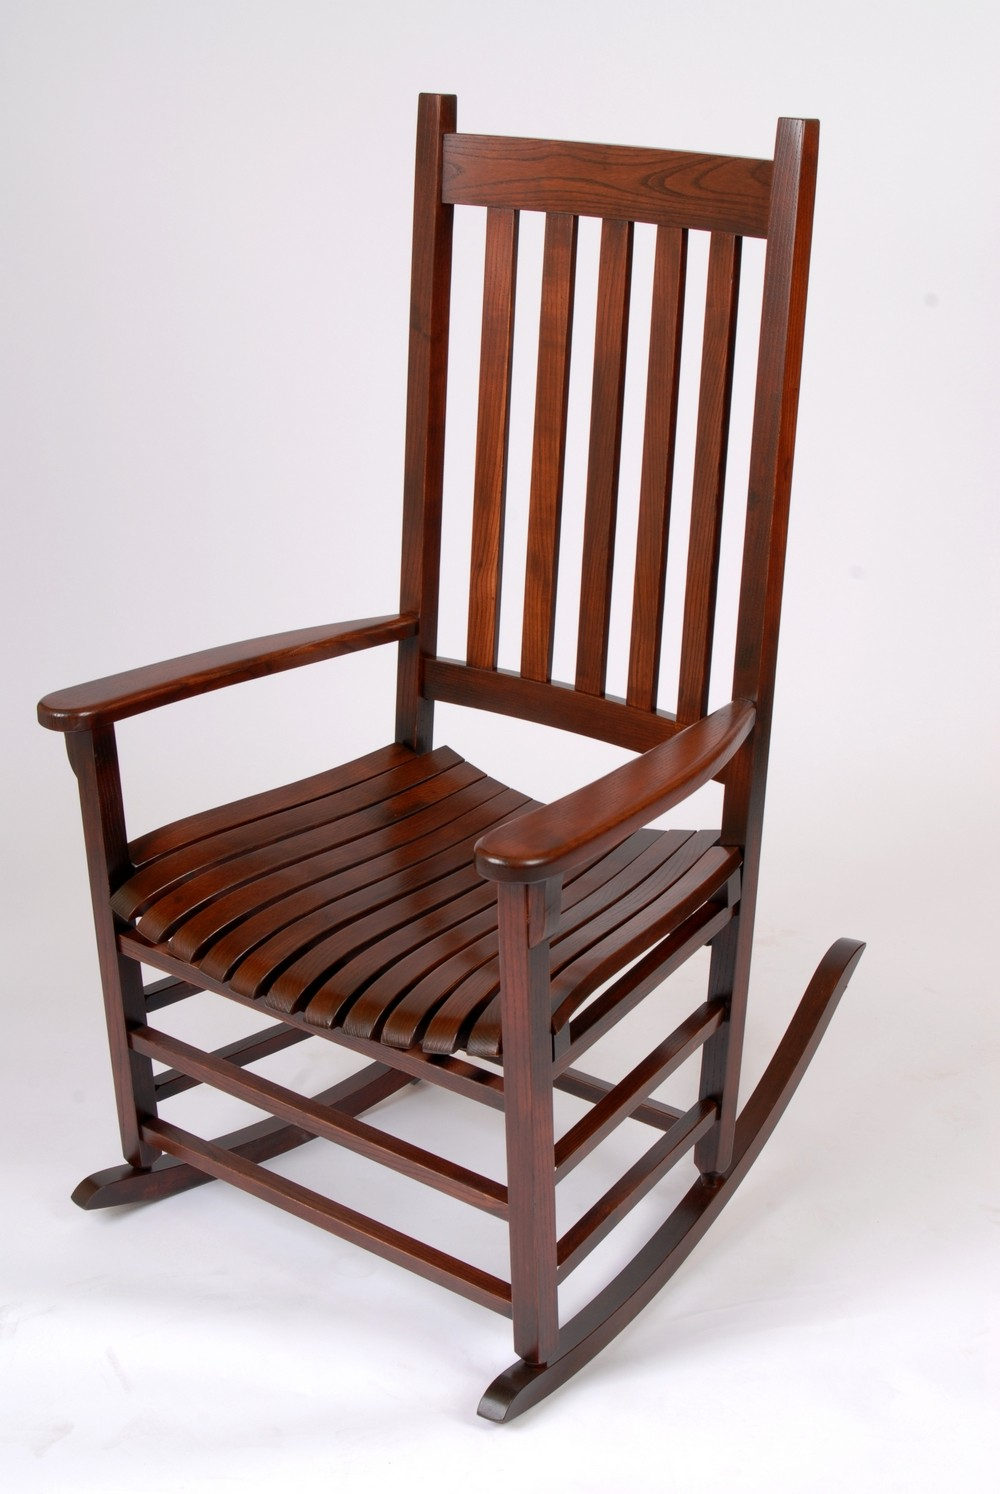 Mission style rocking chair history and designs homesfeed for Rocking chair design plans